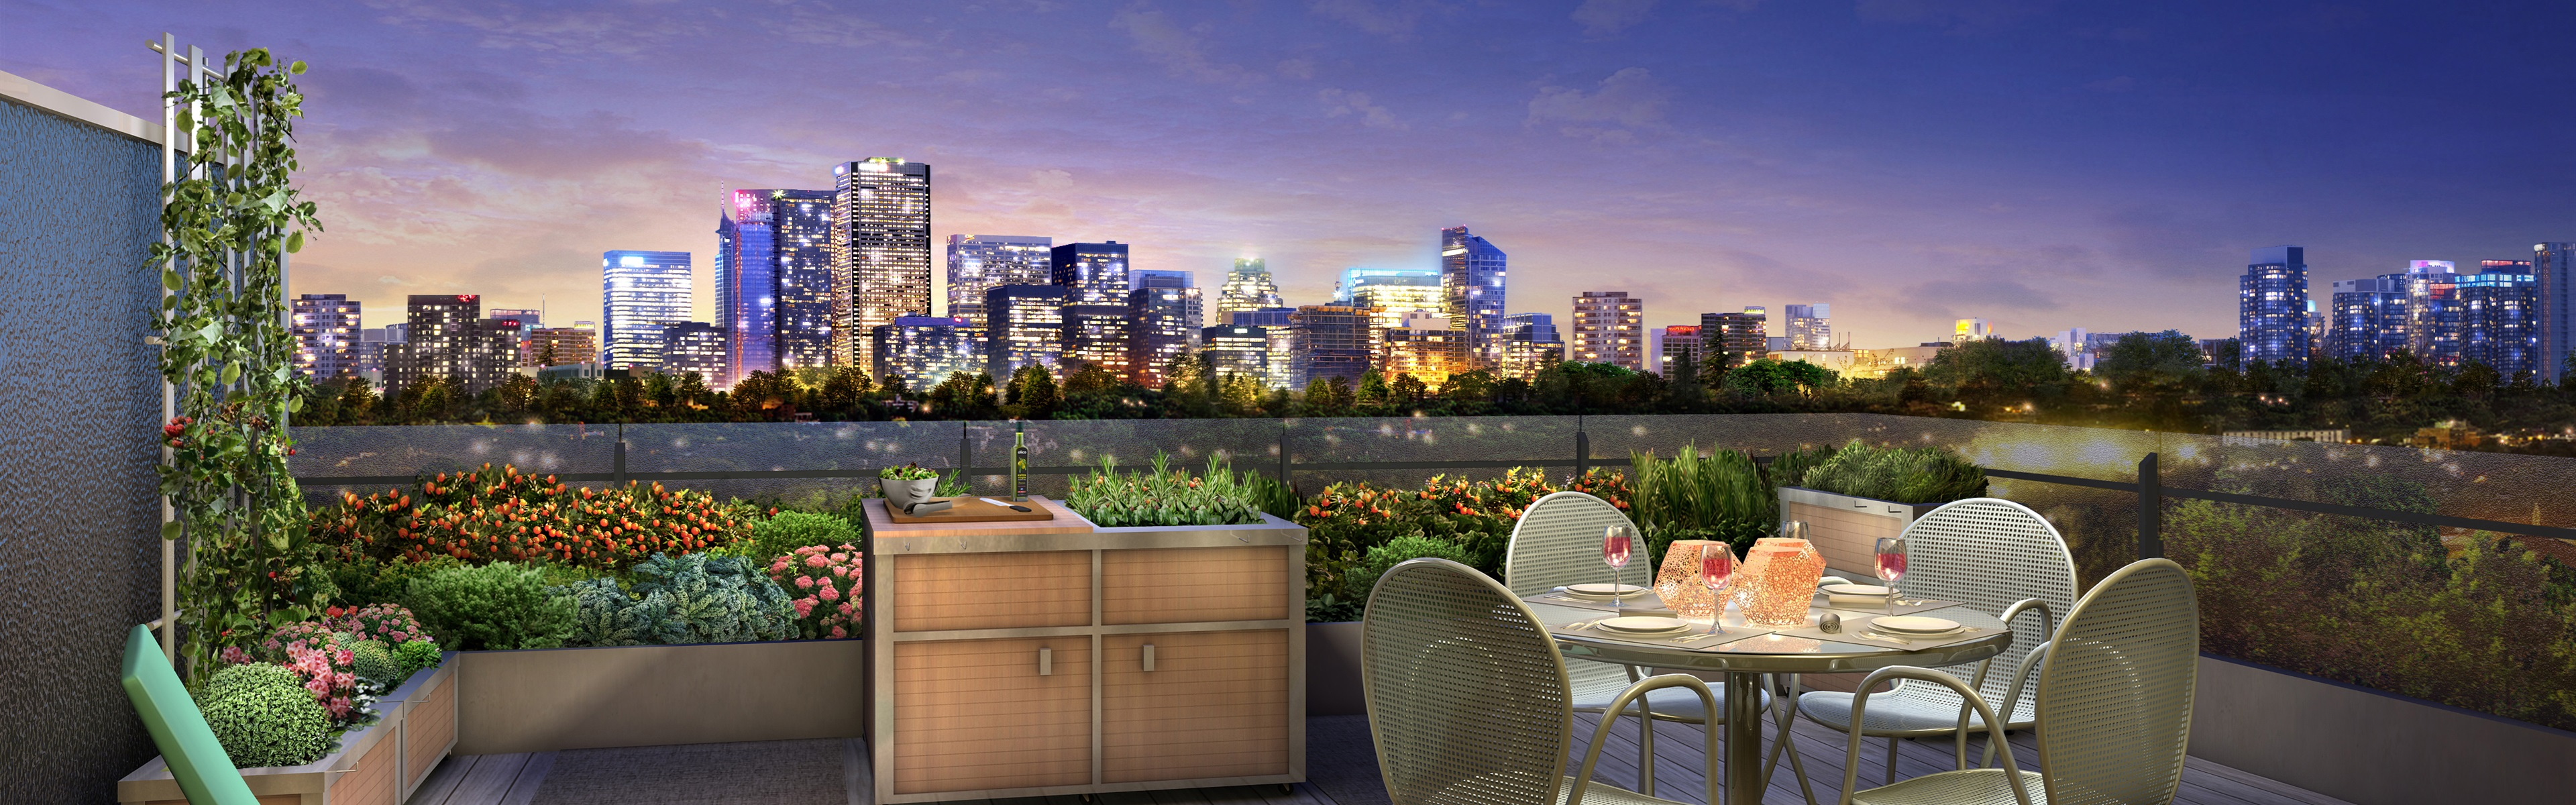 City night terrace lights dinner wine 3d design for Terrace night